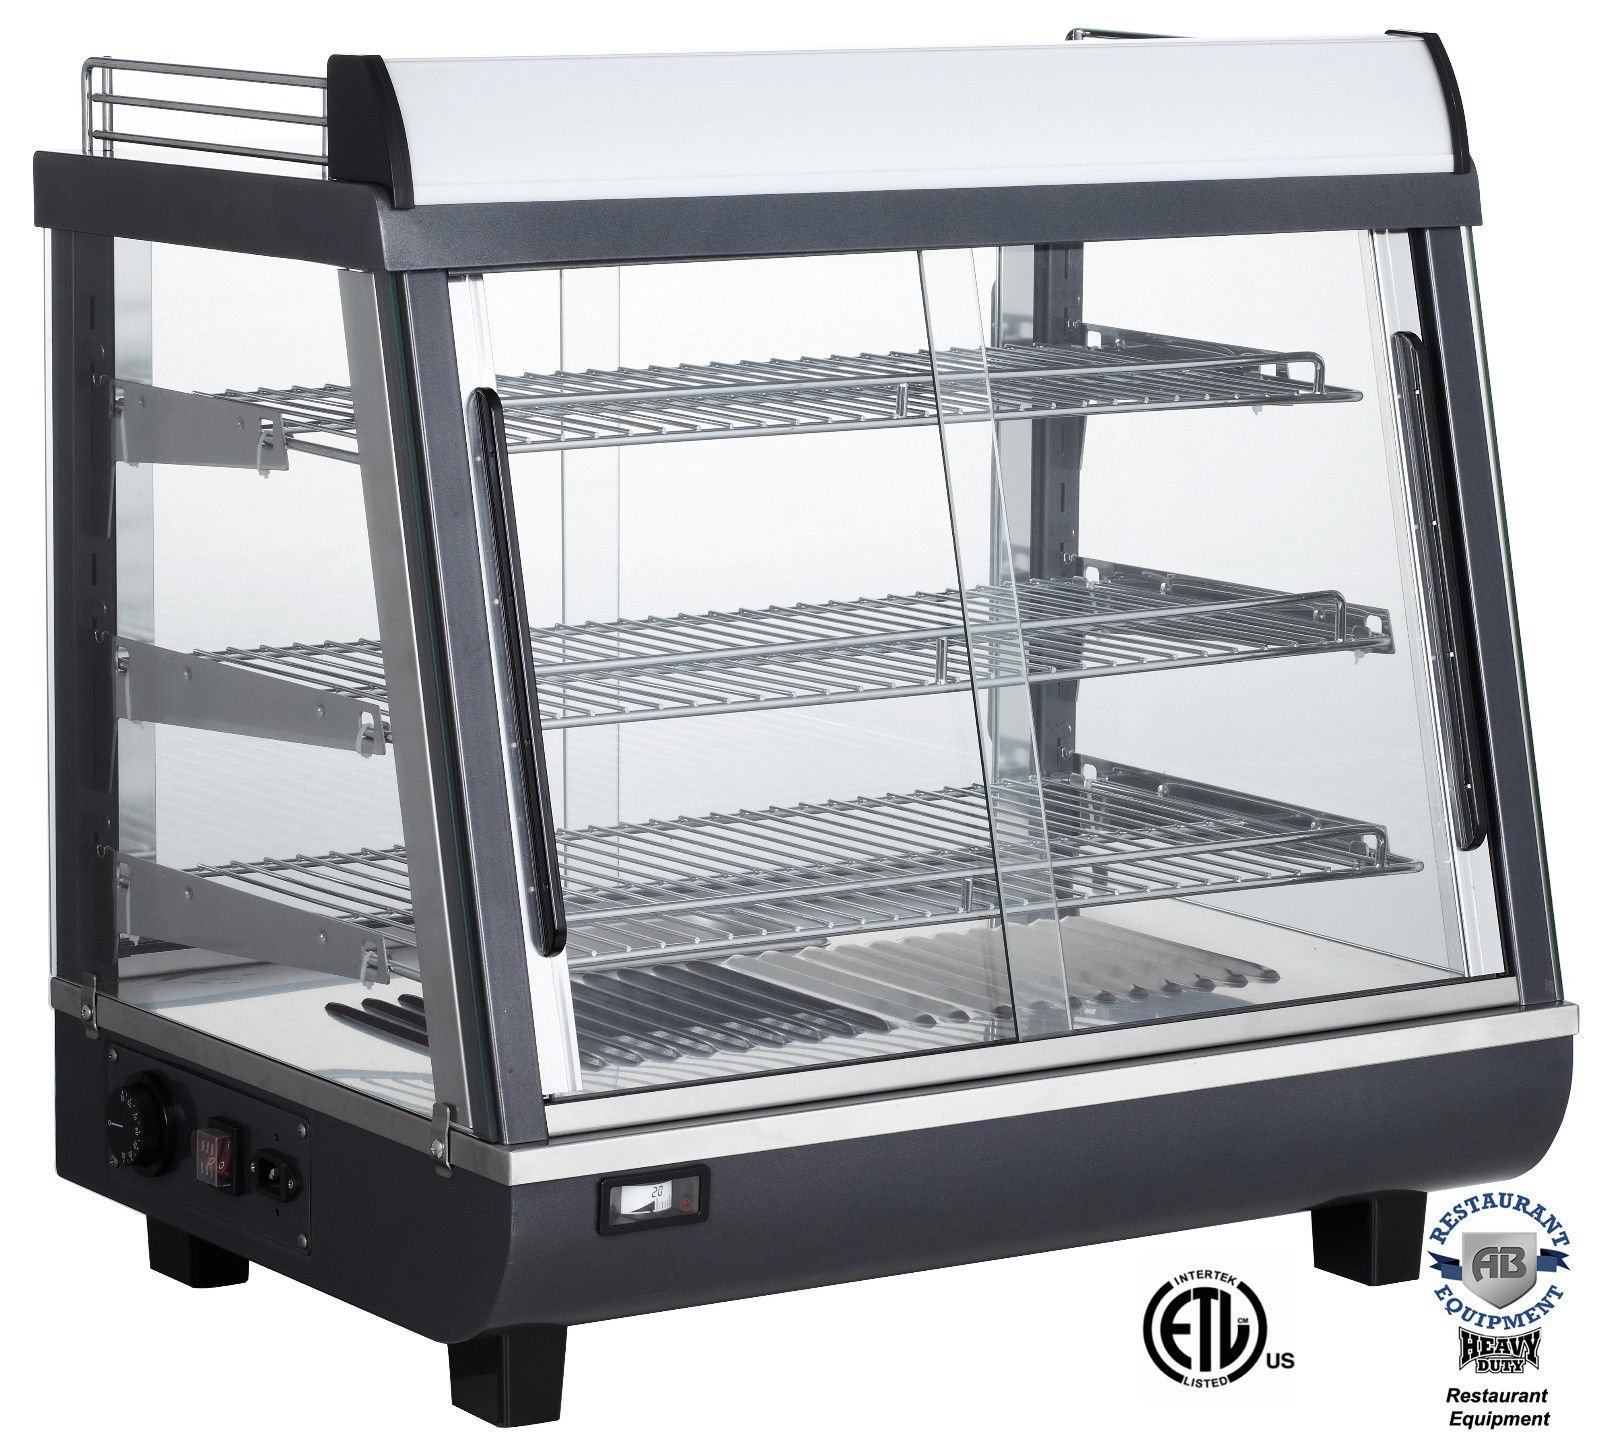 Used Food Warmers ~ Used commercial food warmer for sale ads in us